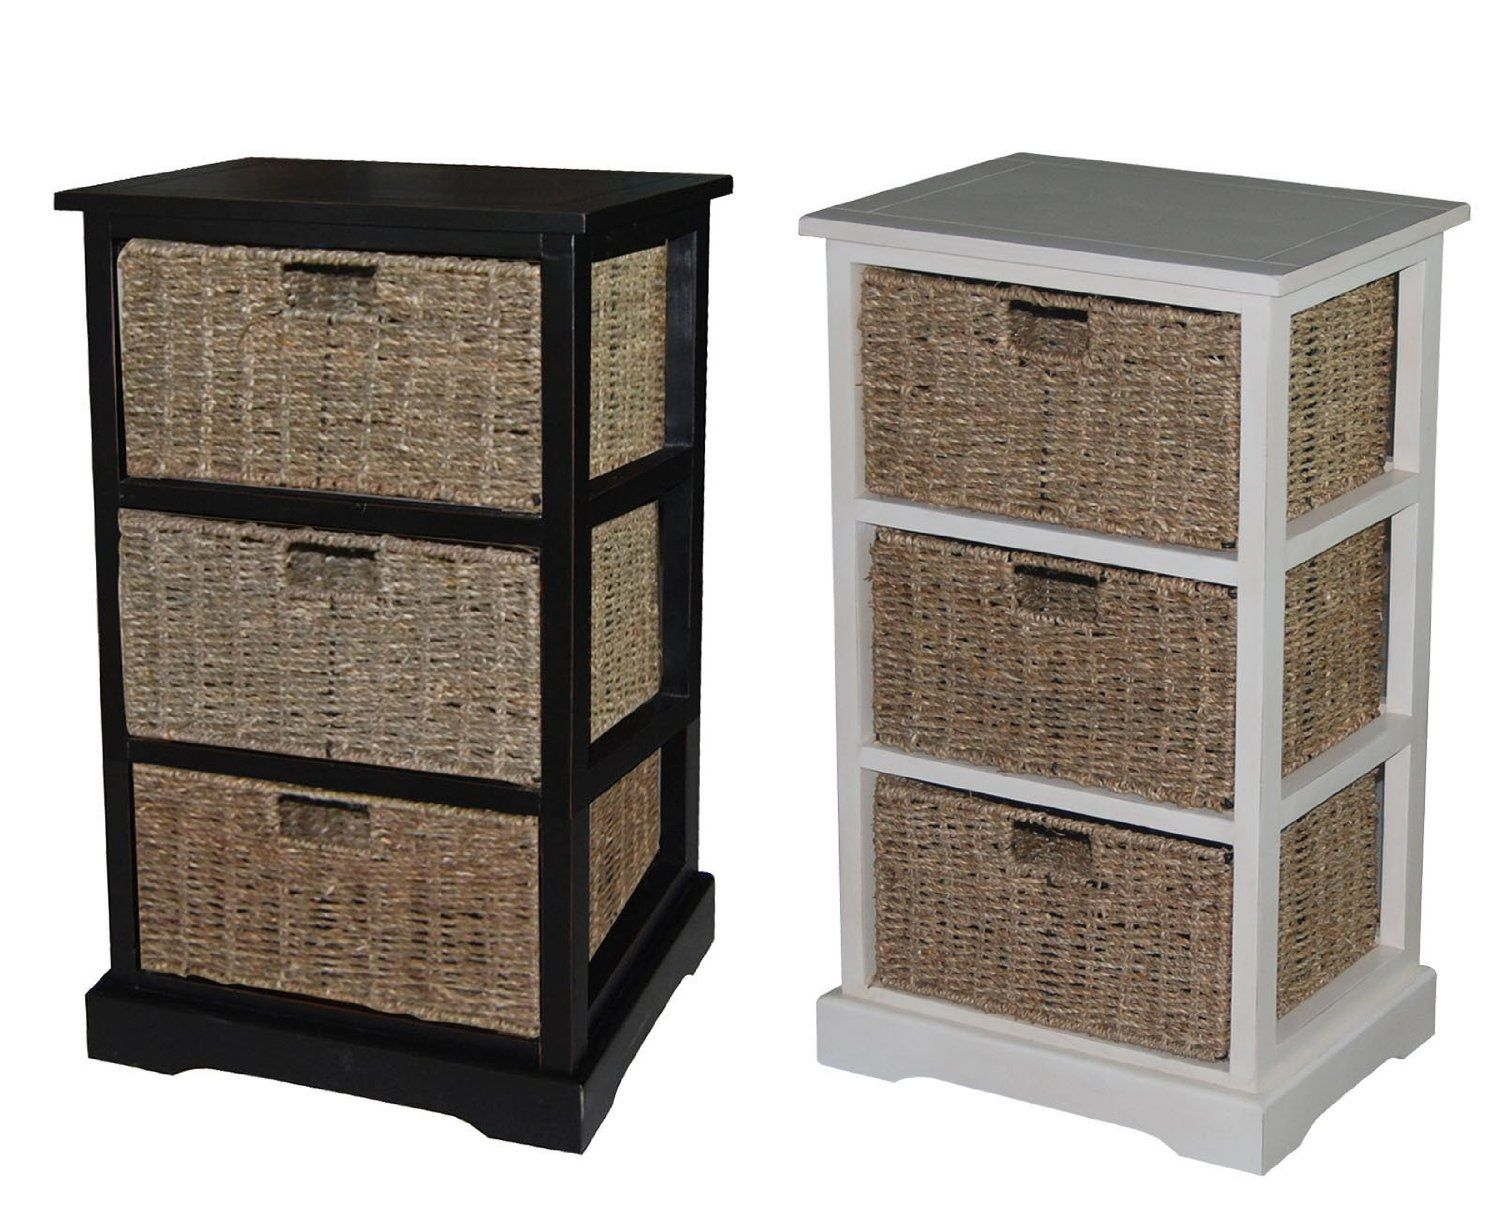 Amazon.com   Urbanest 1000480 Accent Storage Cabinet With Three Seagrass Basket  Drawers, Antique